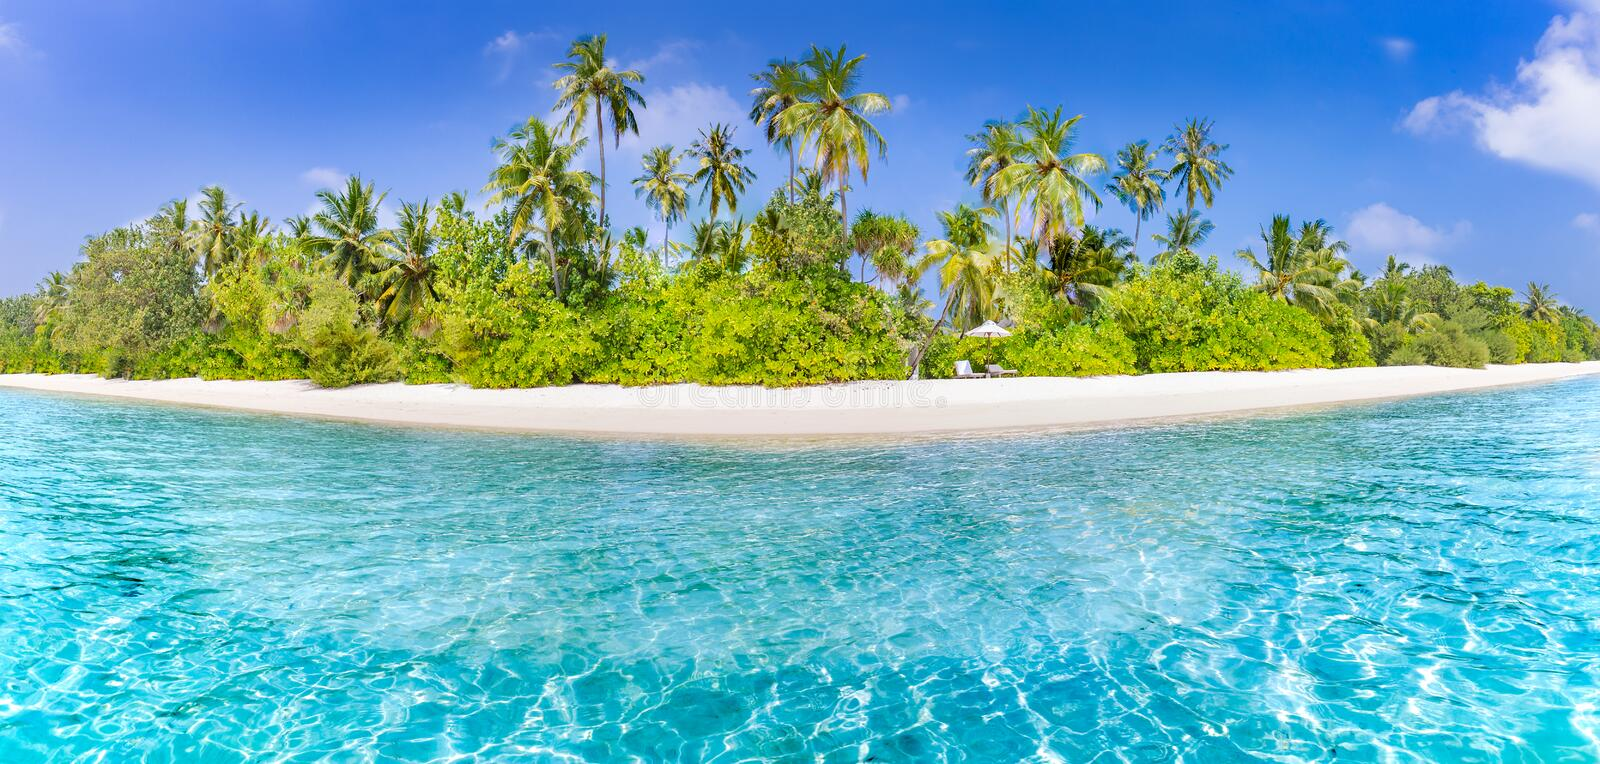 Tropical beach banner and summer landscape background. Vacation and holiday with palm trees and tropical island beach. Beautiful beach landscape. Tropical nature royalty free stock image